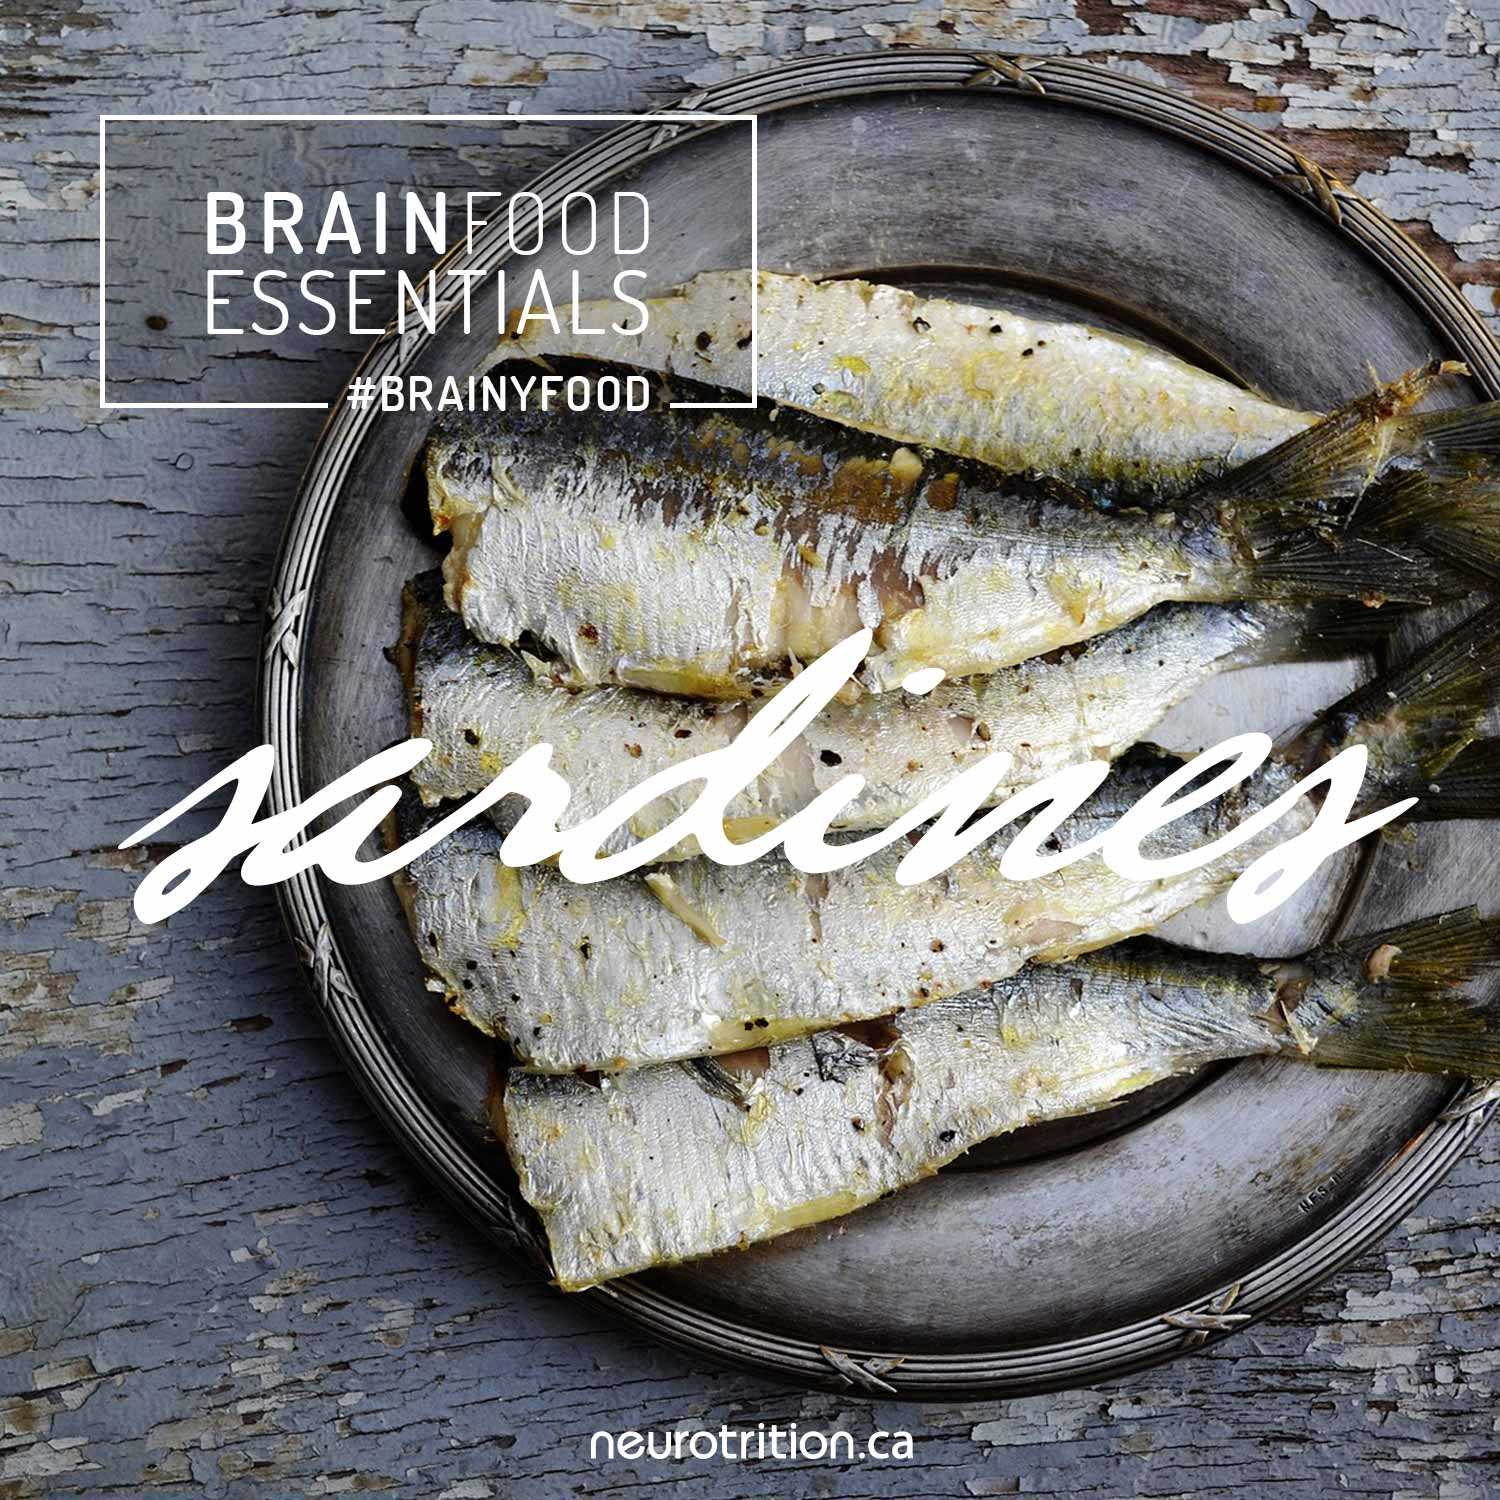 Brain Food Essentials: Sardines